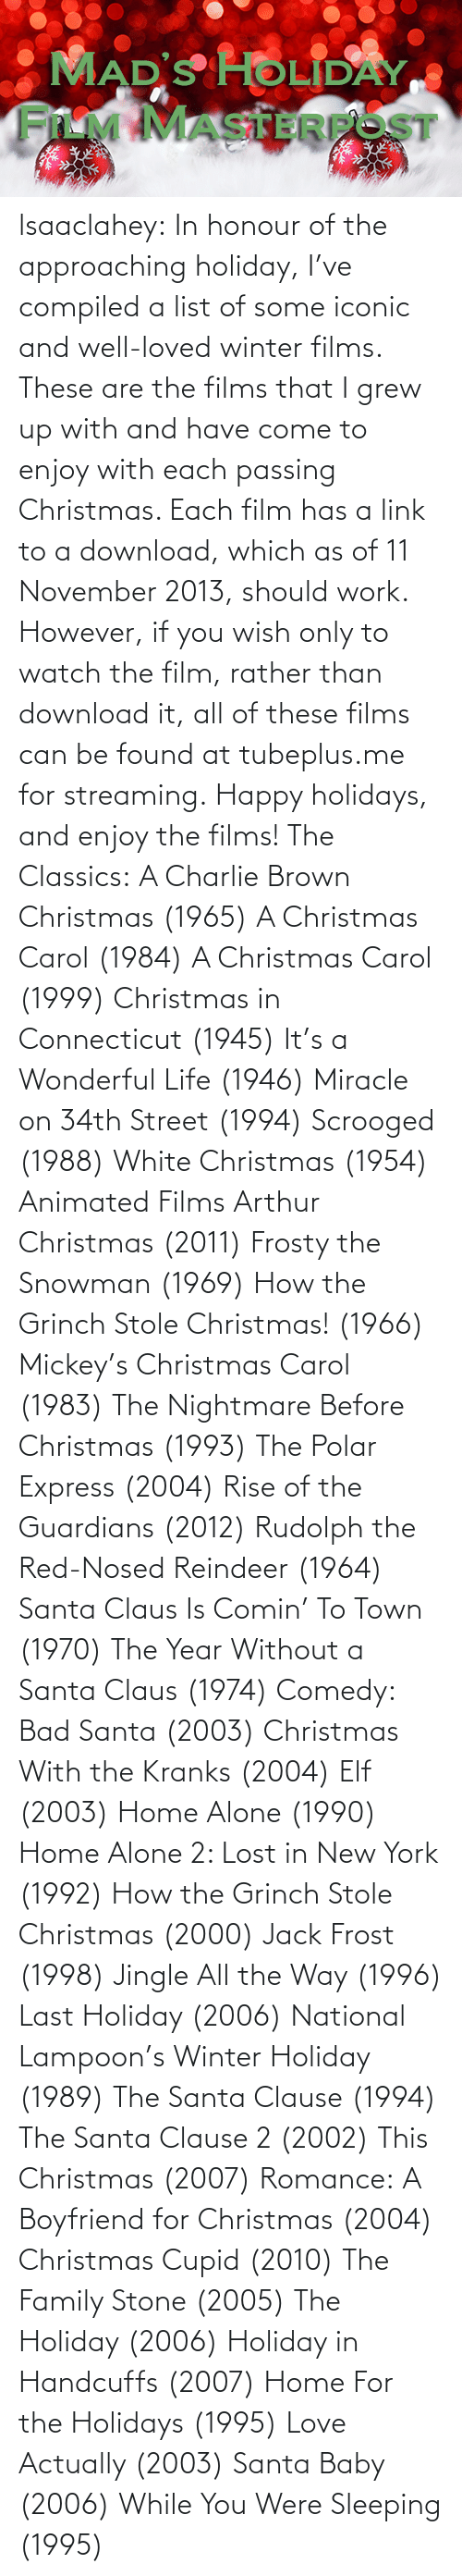 Jack Frost: MAD'S HOLIDAY  FILM MASTERFOST lsaaclahey:  In honour of the approaching holiday, I've compiled a list of some iconic and well-loved winter films. These are the films that I grew up with and have come to enjoy with each passing Christmas. Each film has a link to a download, which as of 11 November 2013, should work. However, if you wish only to watch the film, rather than download it, all of these films can be found at tubeplus.me for streaming. Happy holidays, and enjoy the films! The Classics: A Charlie Brown Christmas (1965) A Christmas Carol (1984) A Christmas Carol (1999) Christmas in Connecticut (1945) It's a Wonderful Life (1946) Miracle on 34th Street (1994) Scrooged (1988) White Christmas (1954) Animated Films Arthur Christmas (2011) Frosty the Snowman (1969) How the Grinch Stole Christmas! (1966) Mickey's Christmas Carol (1983) The Nightmare Before Christmas (1993) The Polar Express (2004) Rise of the Guardians (2012) Rudolph the Red-Nosed Reindeer (1964) Santa Claus Is Comin' To Town (1970) The Year Without a Santa Claus (1974) Comedy: Bad Santa (2003) Christmas With the Kranks (2004) Elf (2003) Home Alone (1990) Home Alone 2: Lost in New York (1992) How the Grinch Stole Christmas (2000) Jack Frost (1998) Jingle All the Way (1996) Last Holiday (2006) National Lampoon's Winter Holiday (1989) The Santa Clause (1994) The Santa Clause 2 (2002) This Christmas (2007) Romance: A Boyfriend for Christmas (2004) Christmas Cupid (2010) The Family Stone (2005) The Holiday (2006) Holiday in Handcuffs (2007) Home For the Holidays (1995) Love Actually (2003) Santa Baby (2006) While You Were Sleeping (1995)